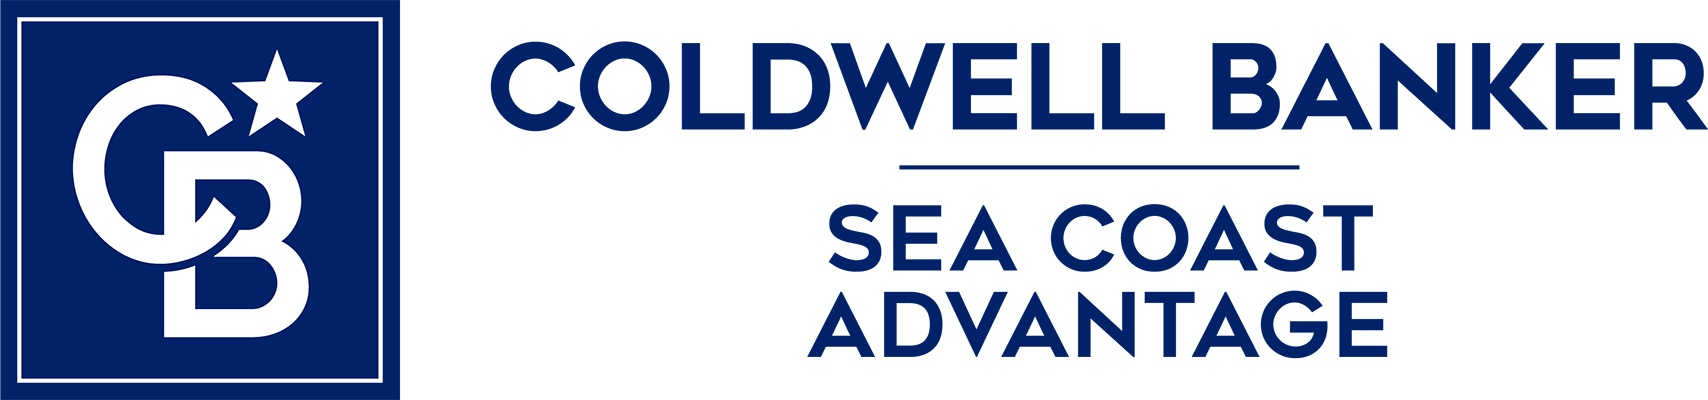 Kathy Alexander - Coldwell Banker Sea Coast Advantage Realty